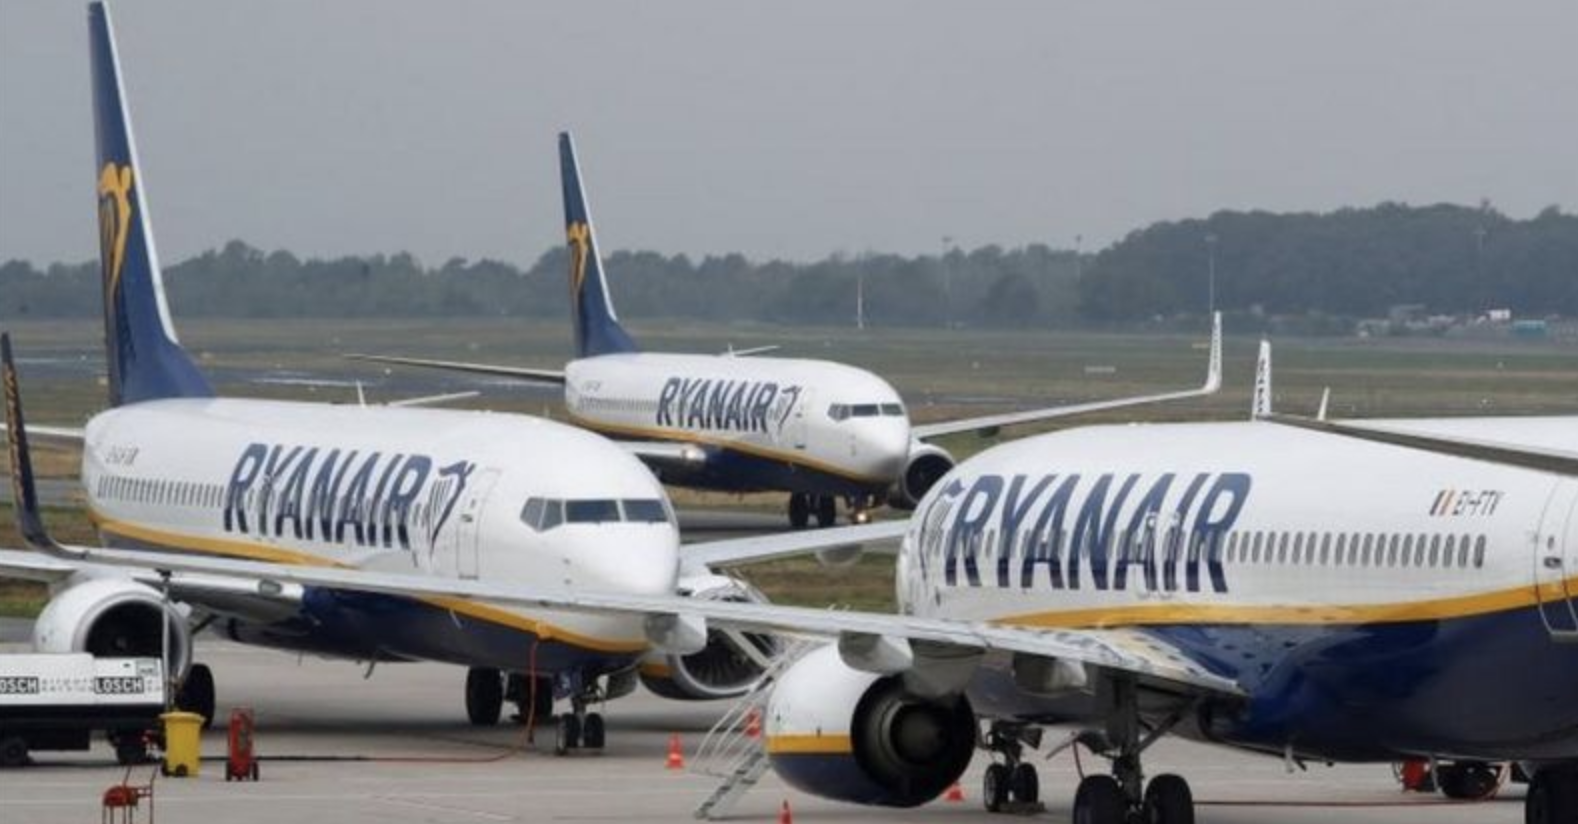 Ryanair: Full Year Traffic to Fall to About 38 Million Guests